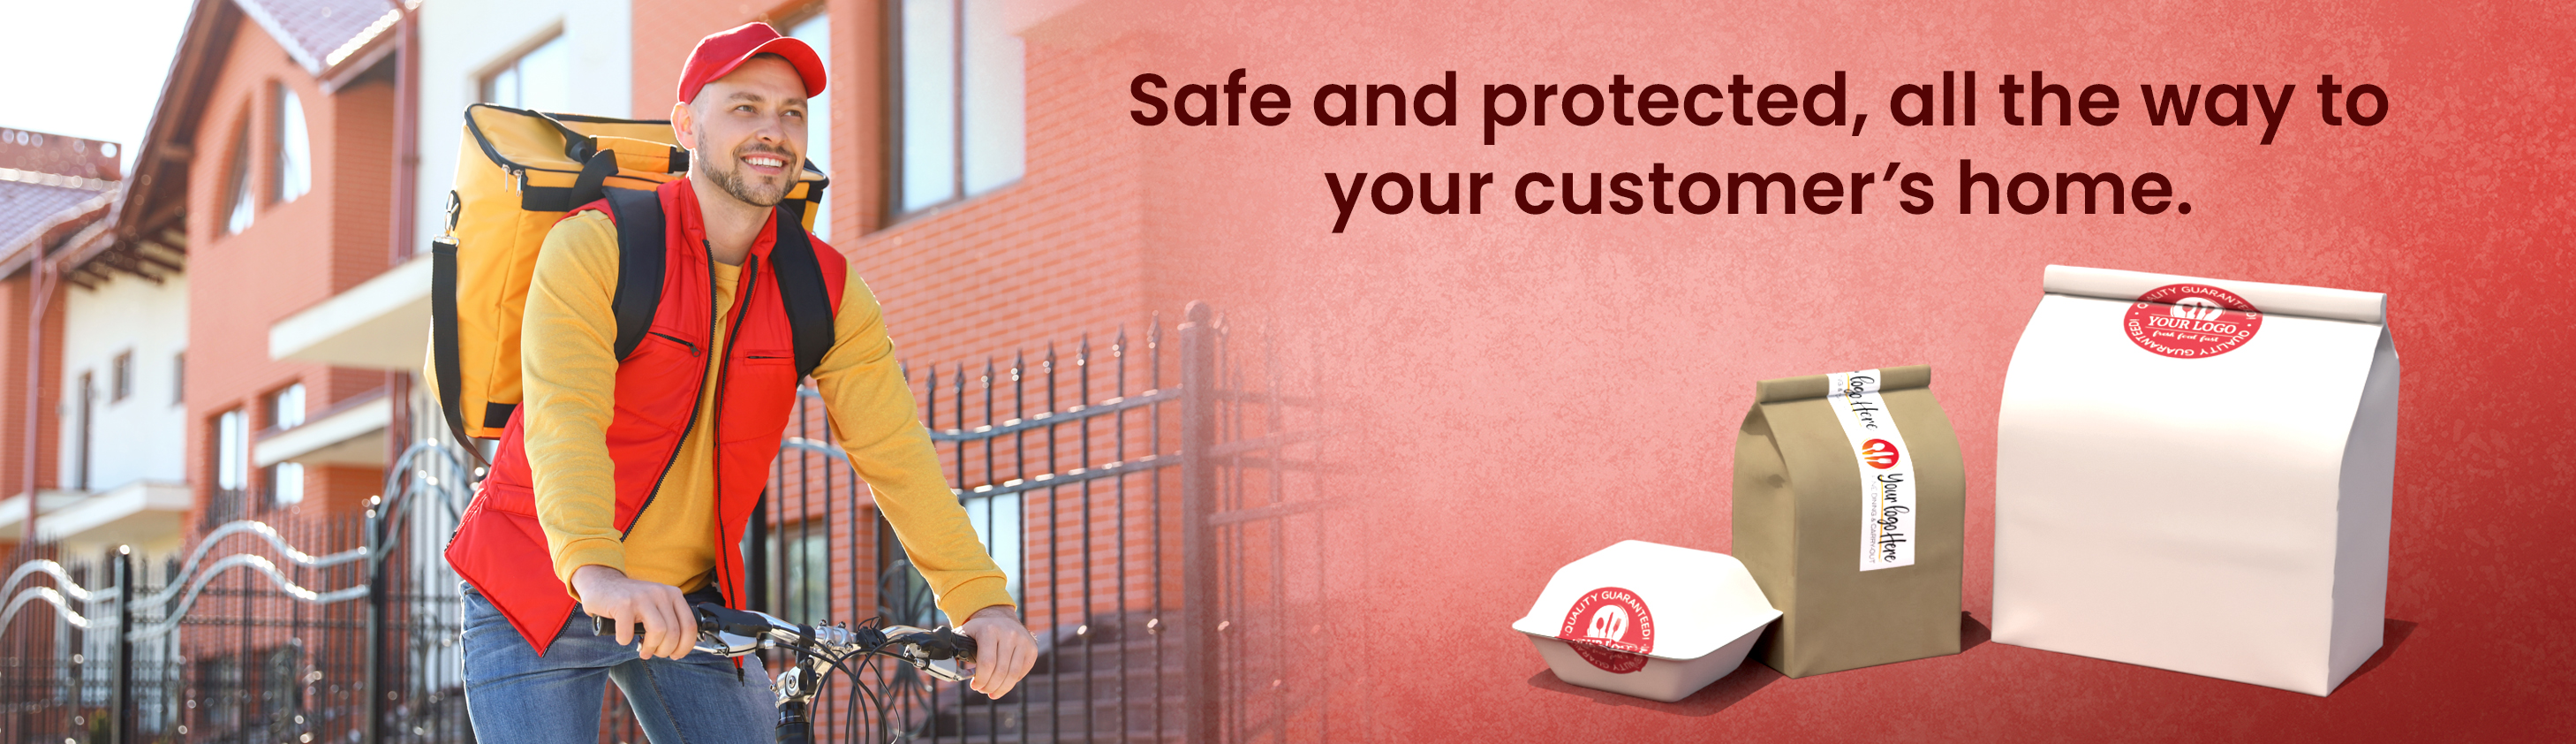 """Delivery driver on bike with text """"Safe and protected, all the way to your customer's home"""""""